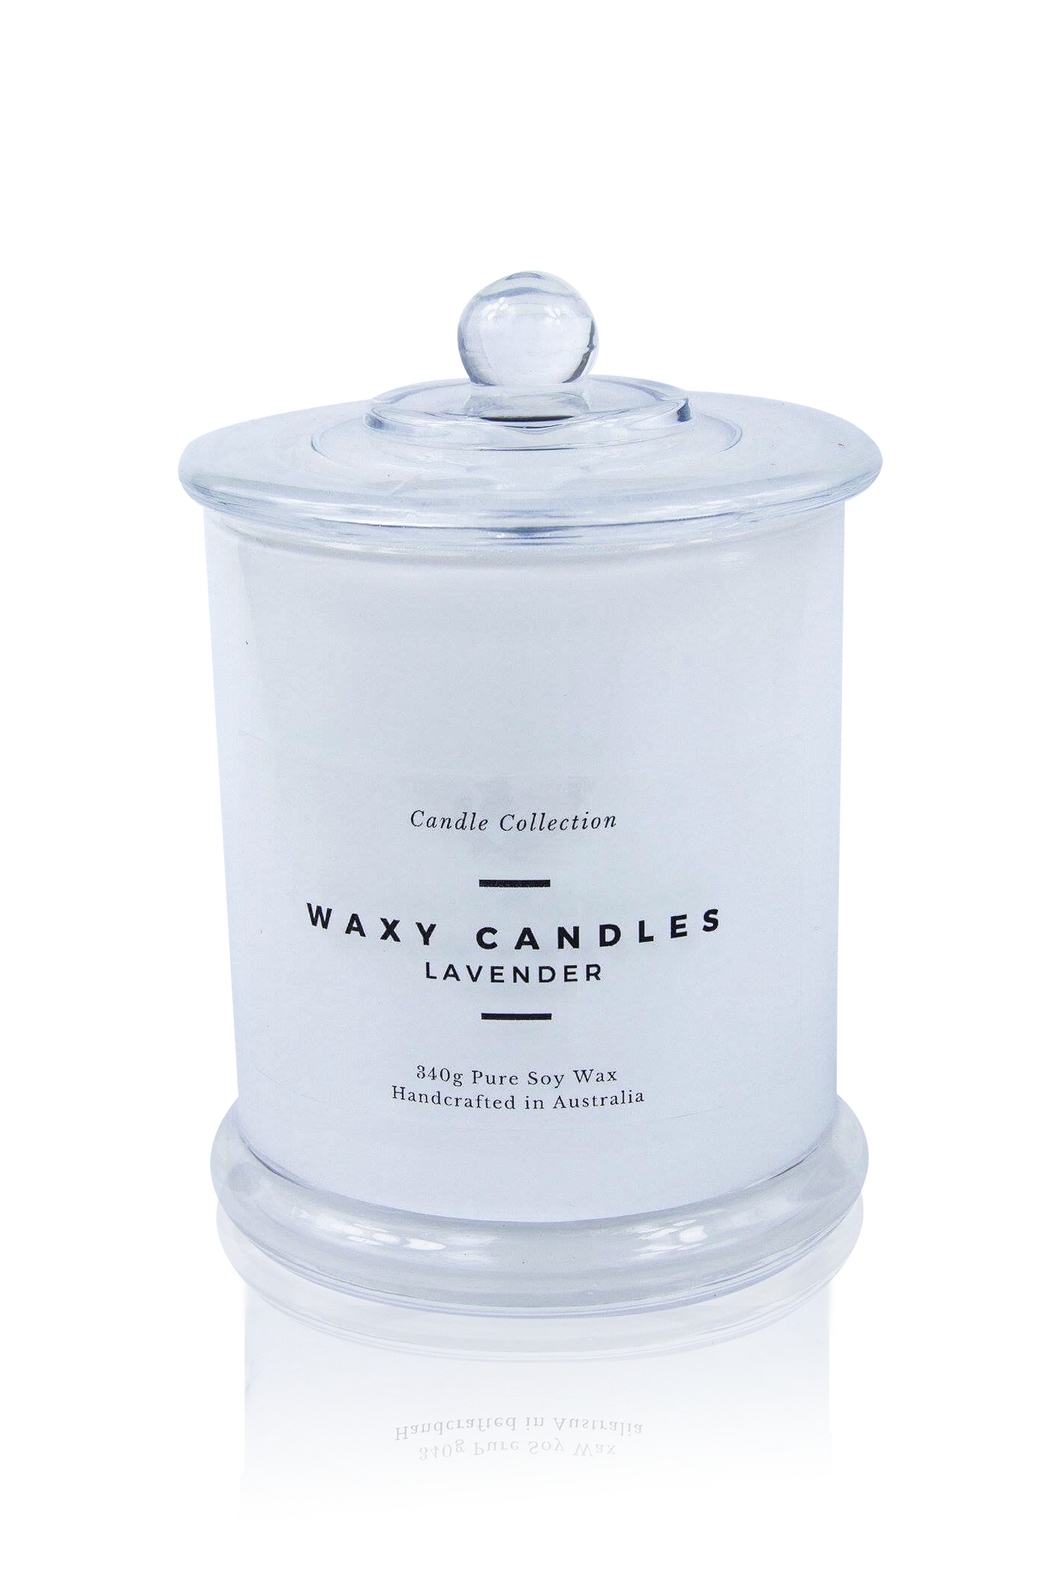 Lavender - Waxy Candles